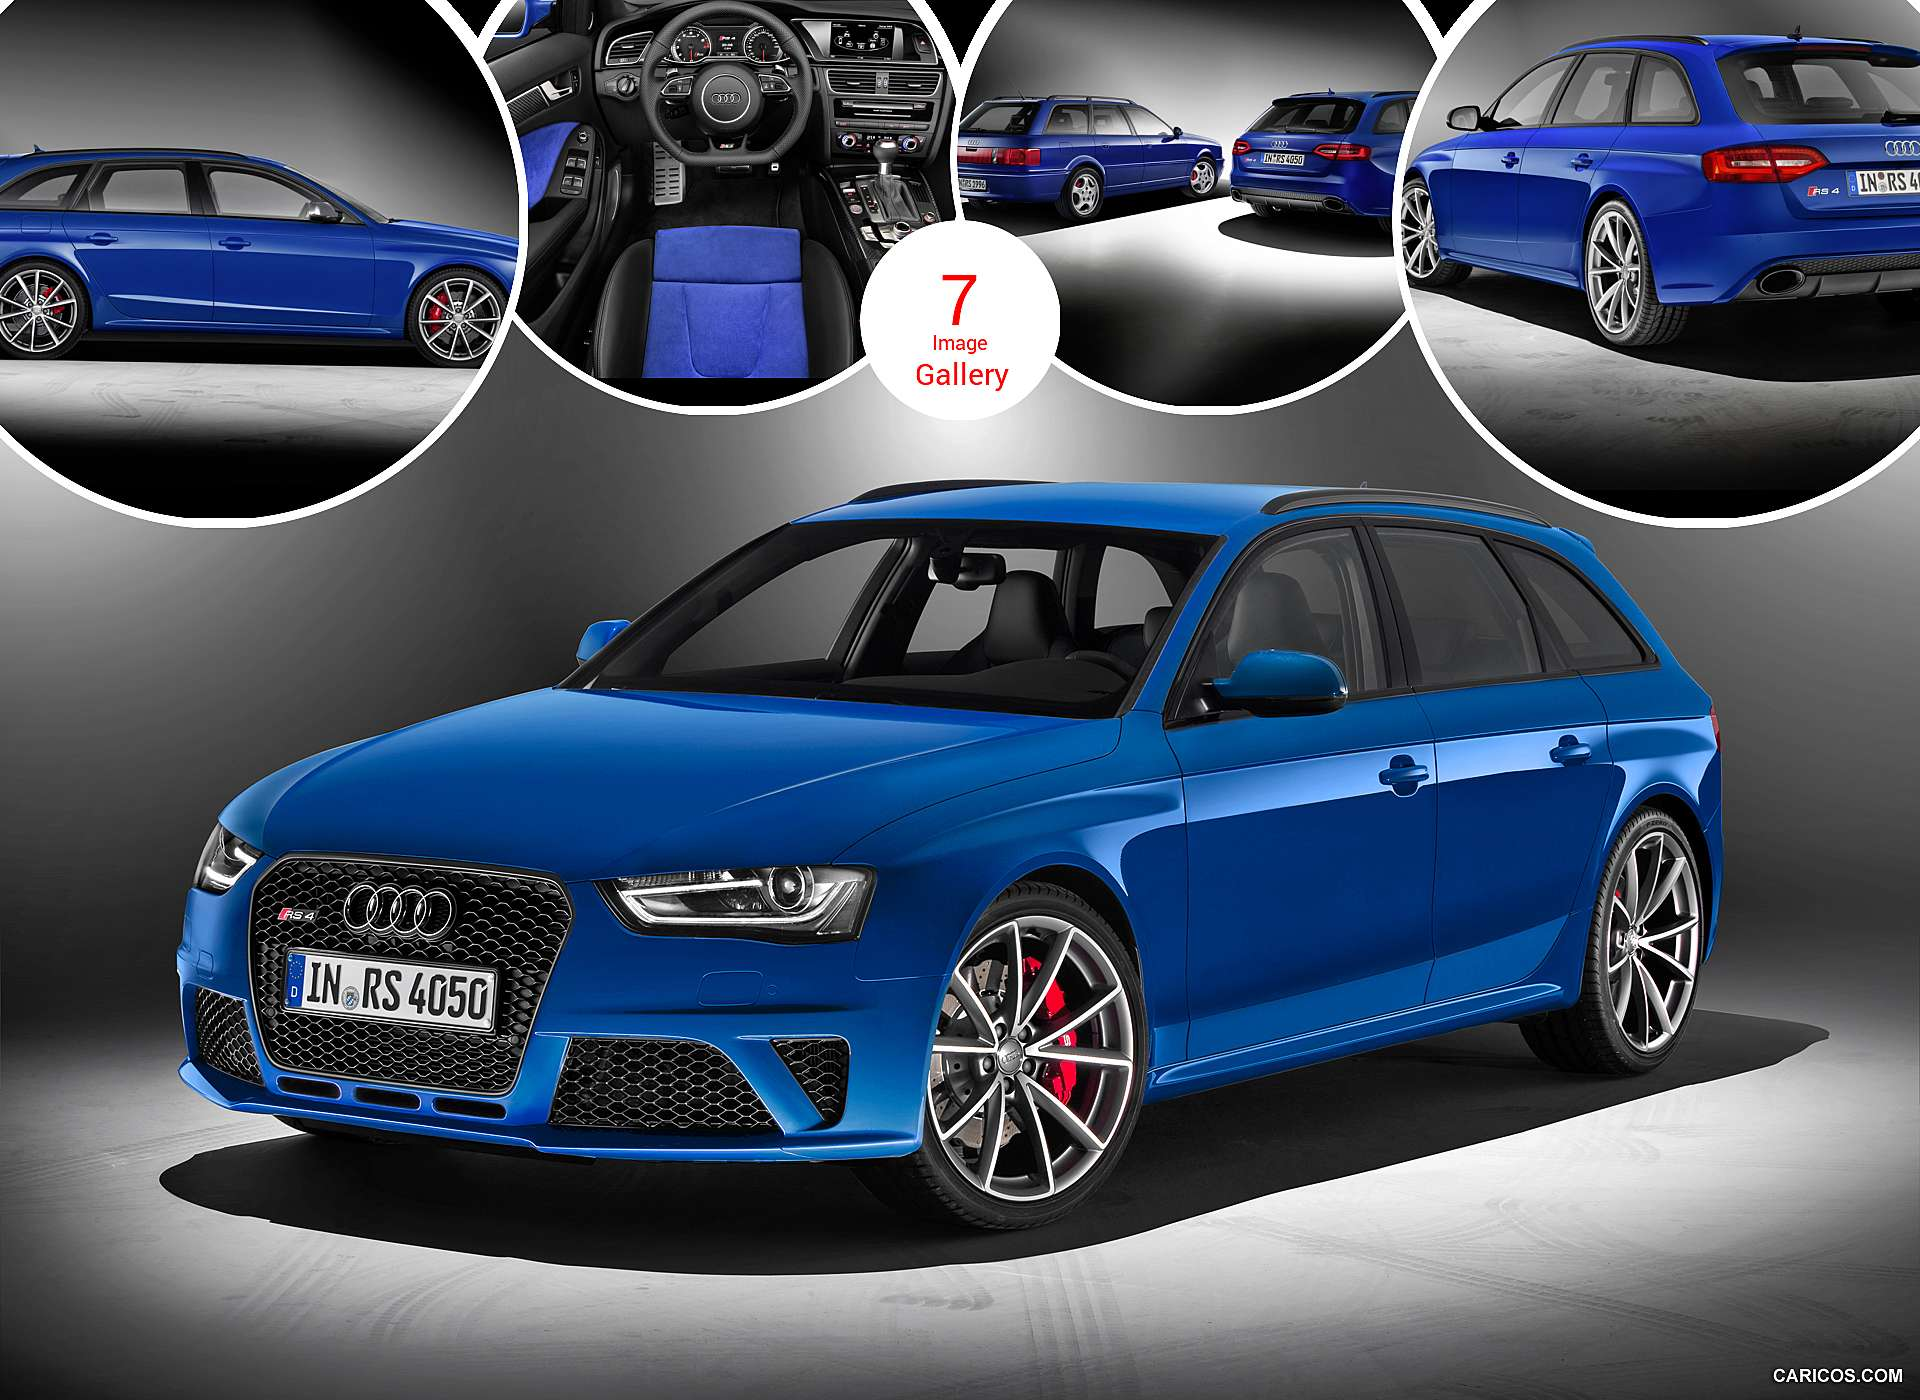 2015 Audi RS 4 Avant Nogaro Selection